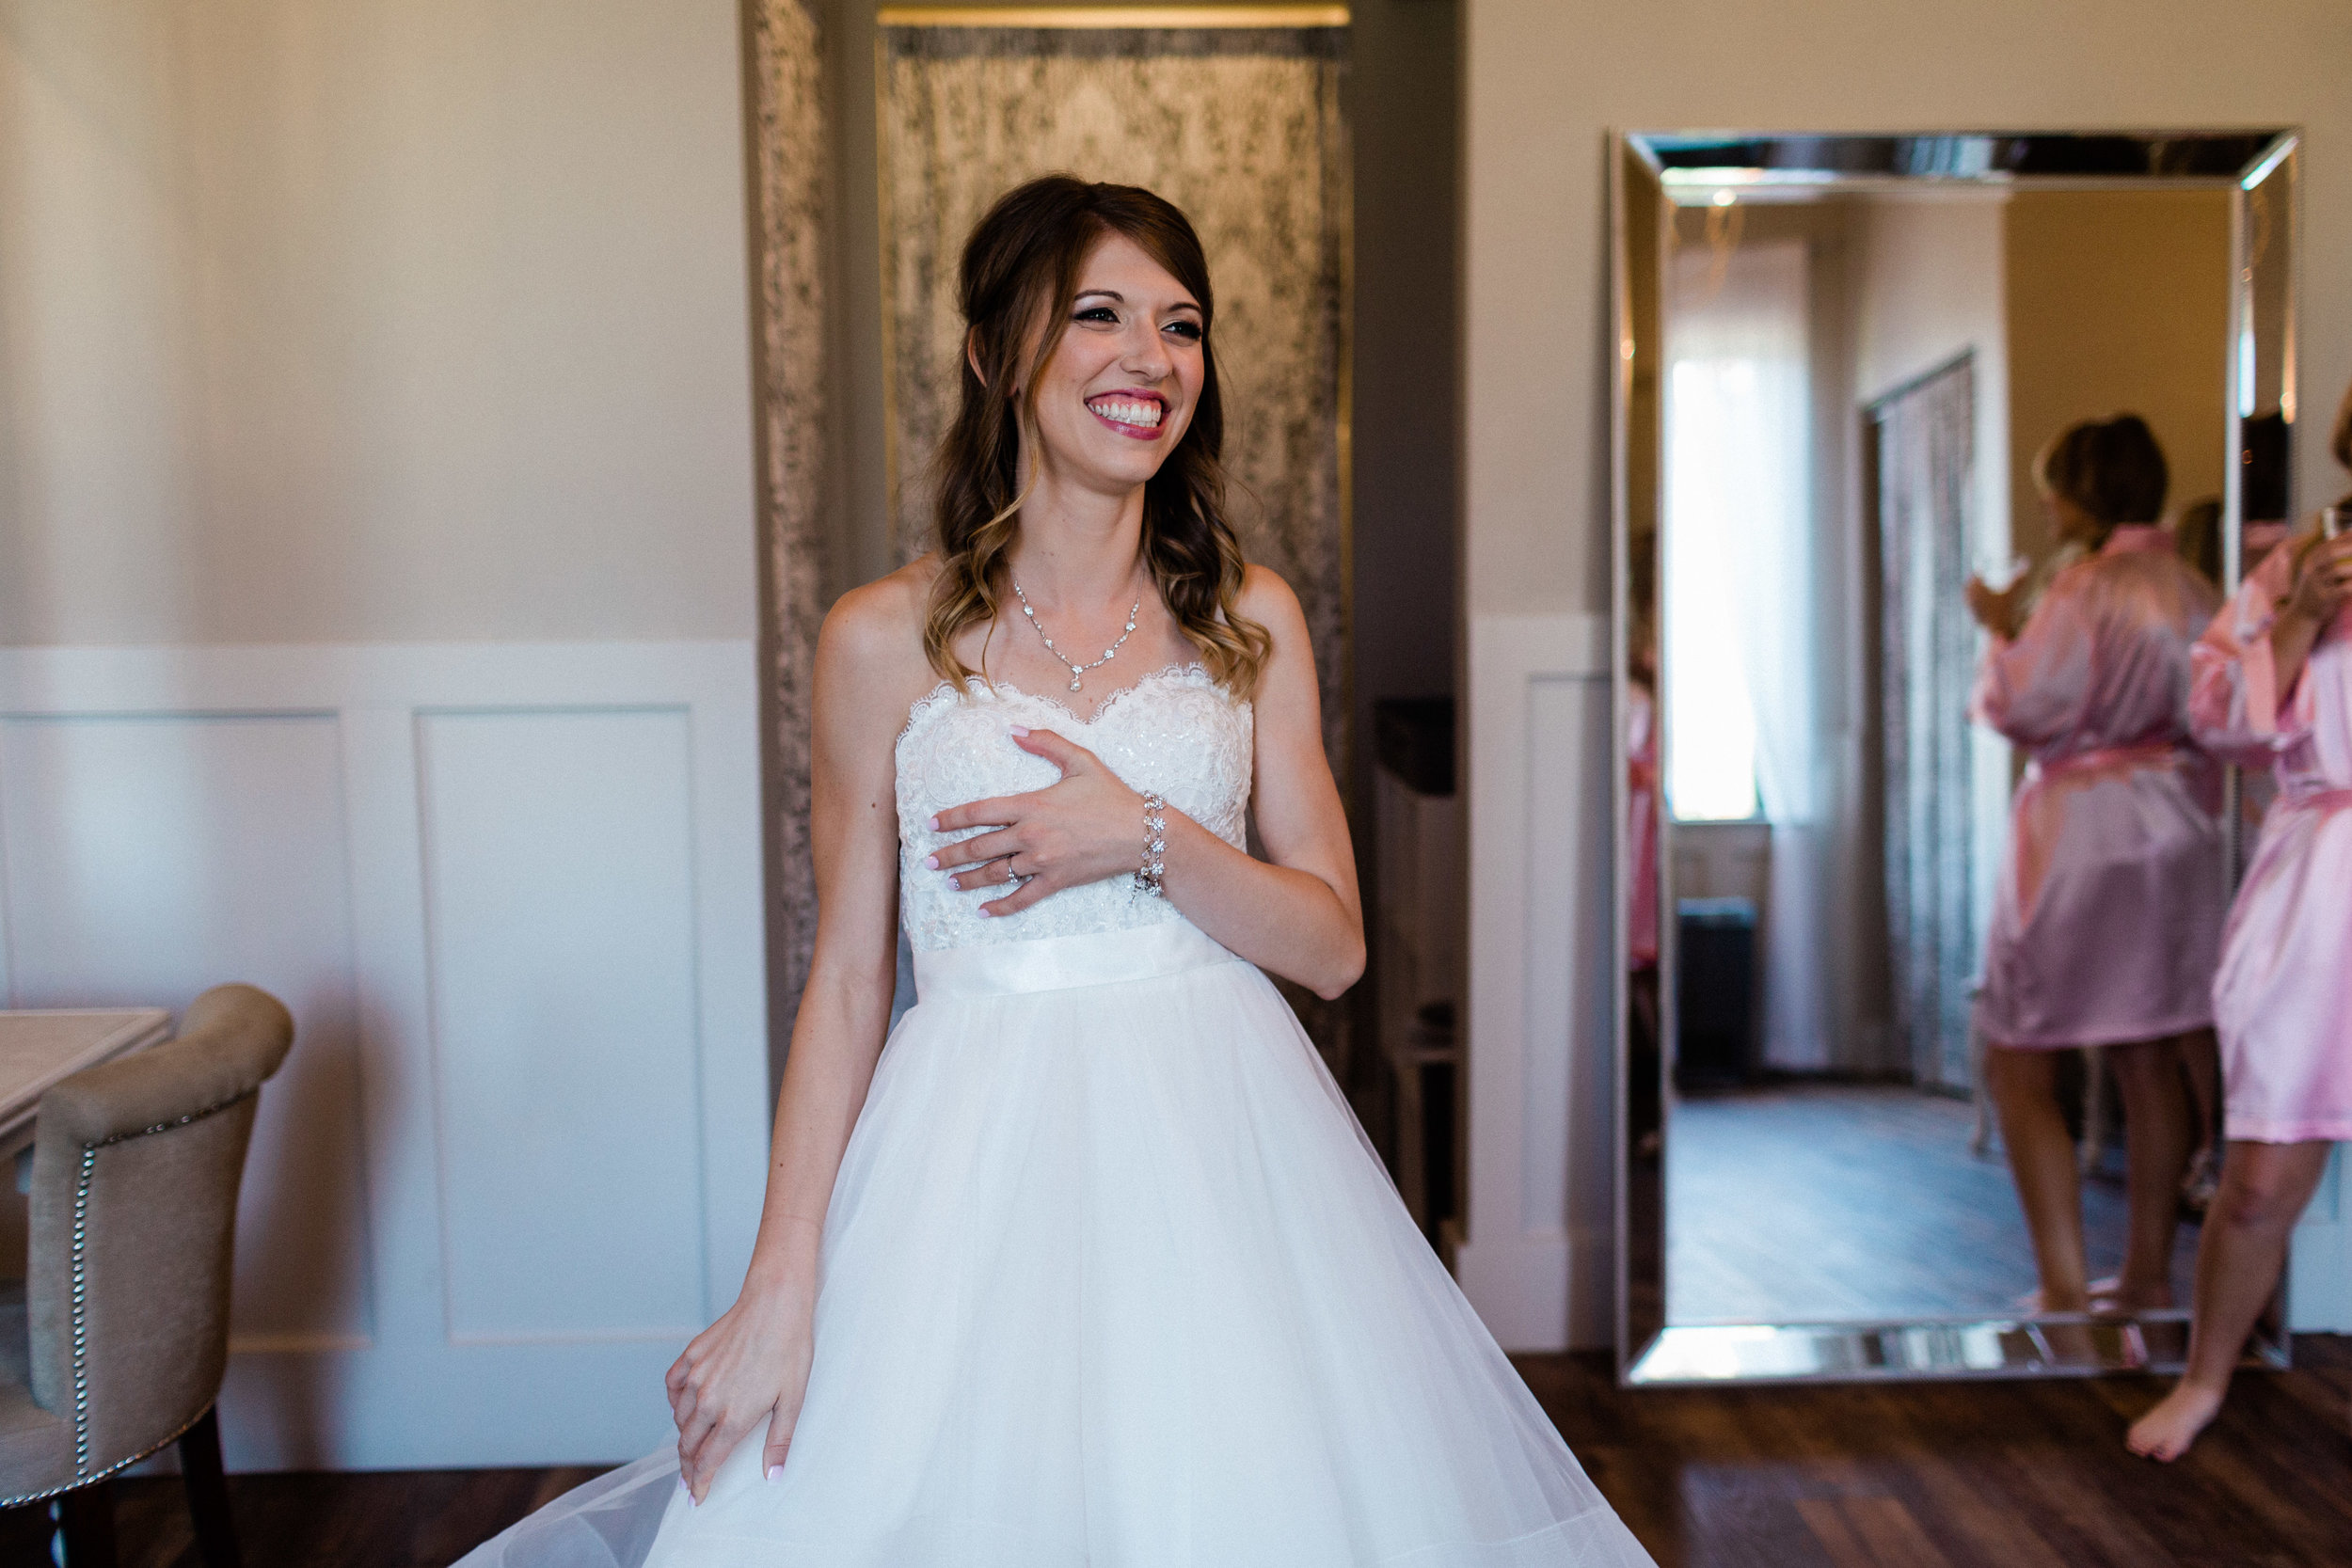 Adelia getting ready in her bridal suite on her wedding day at Chandler's Gardens